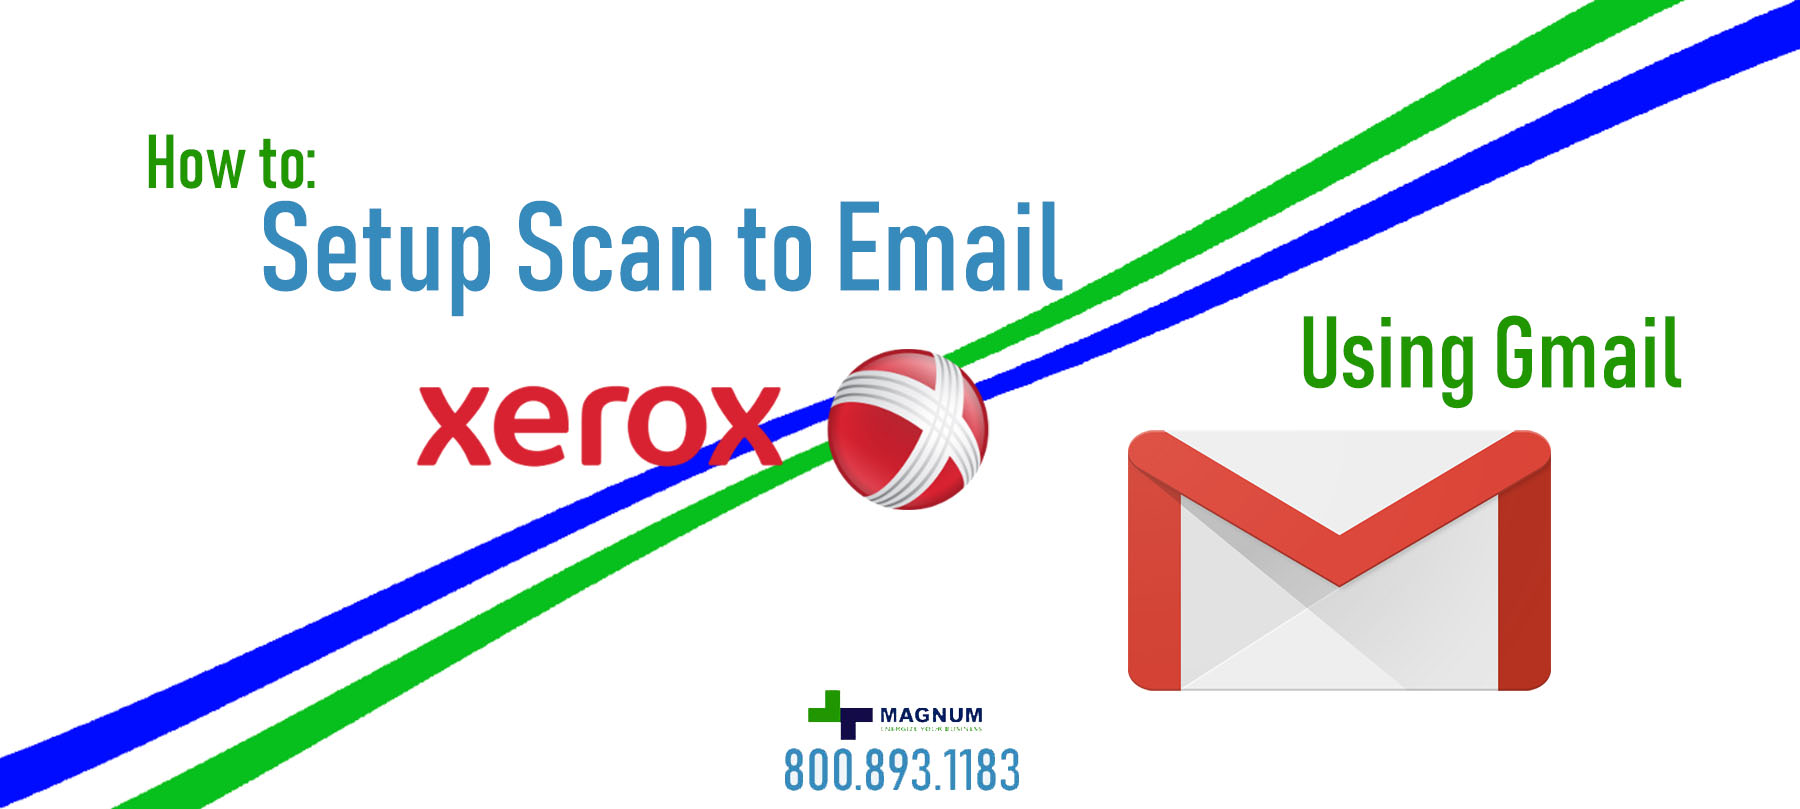 How to setup Scan to Email with Gmail on Xerox Altalink